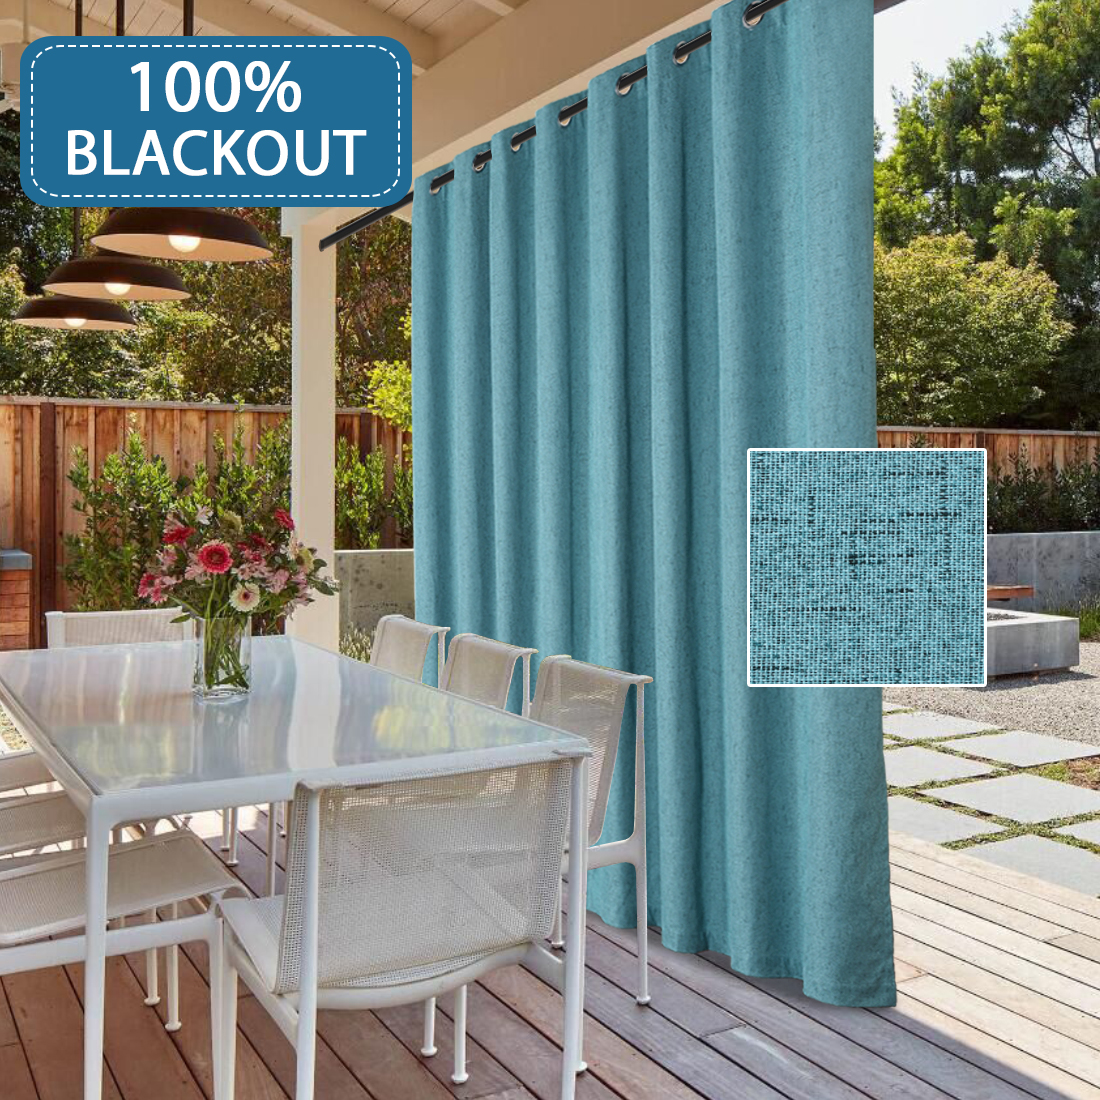 waterproof outdoor rich linen patio curtain 100 blackout curtain panels extra wide curtains anti rust grommets sliding door insulated draperies